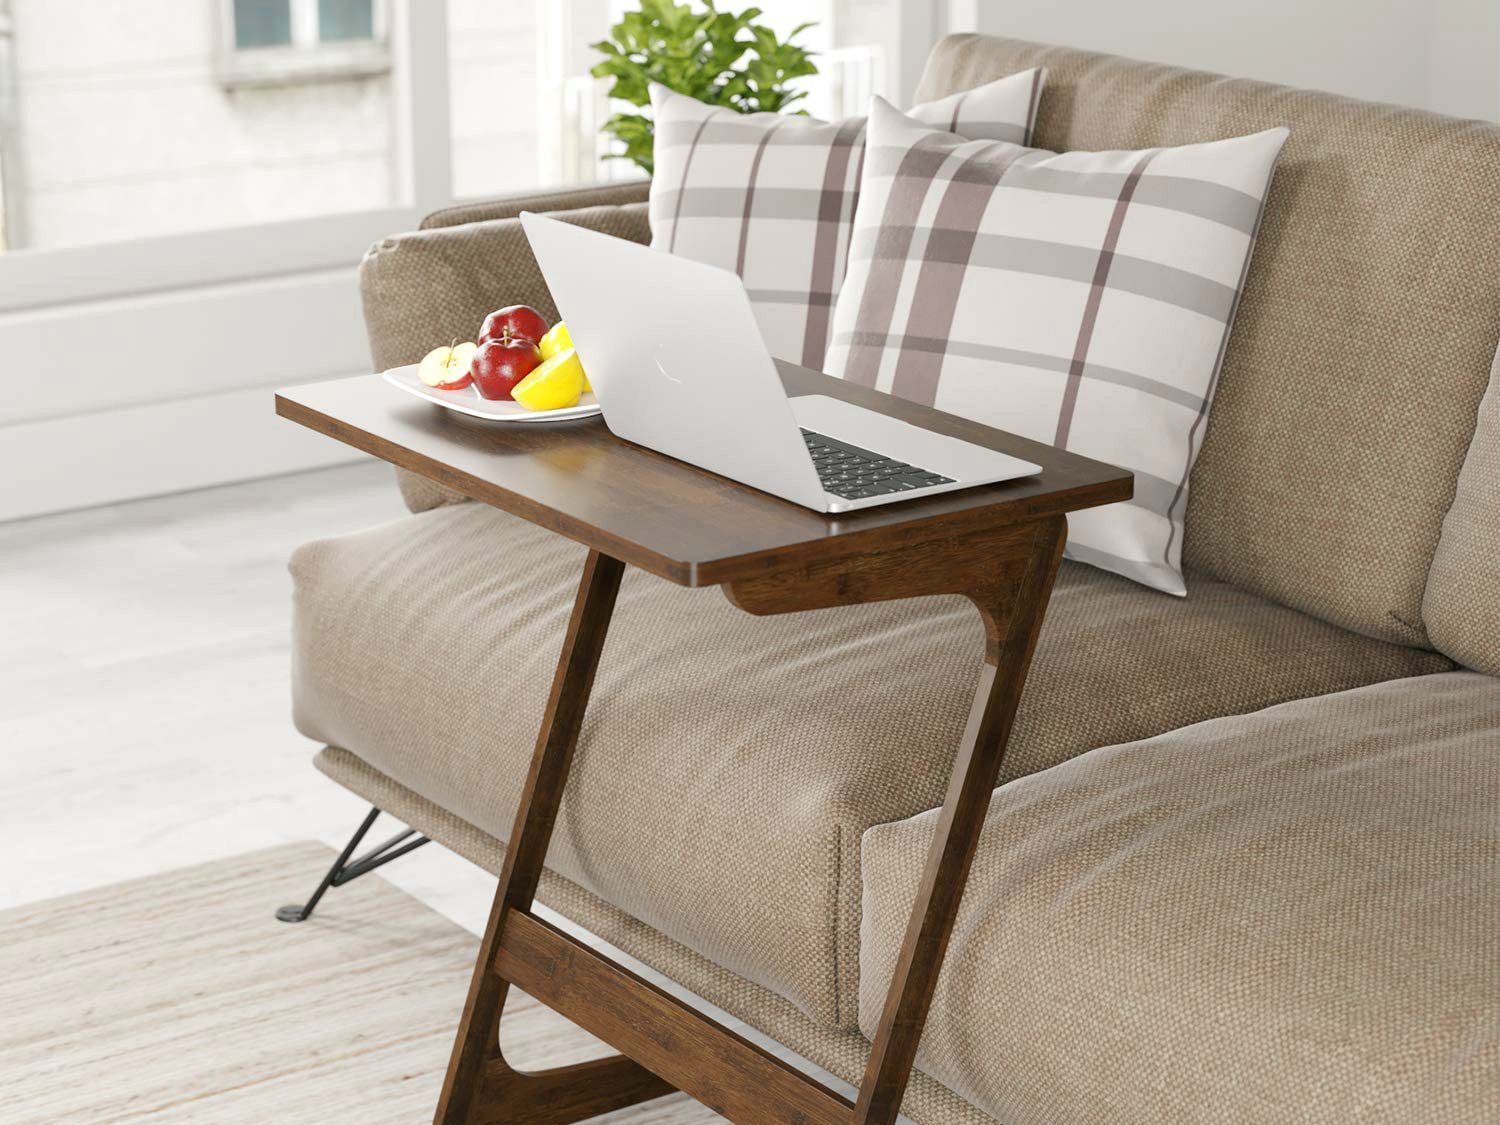 Work From Home on Your Couch: How to Create a Living Room